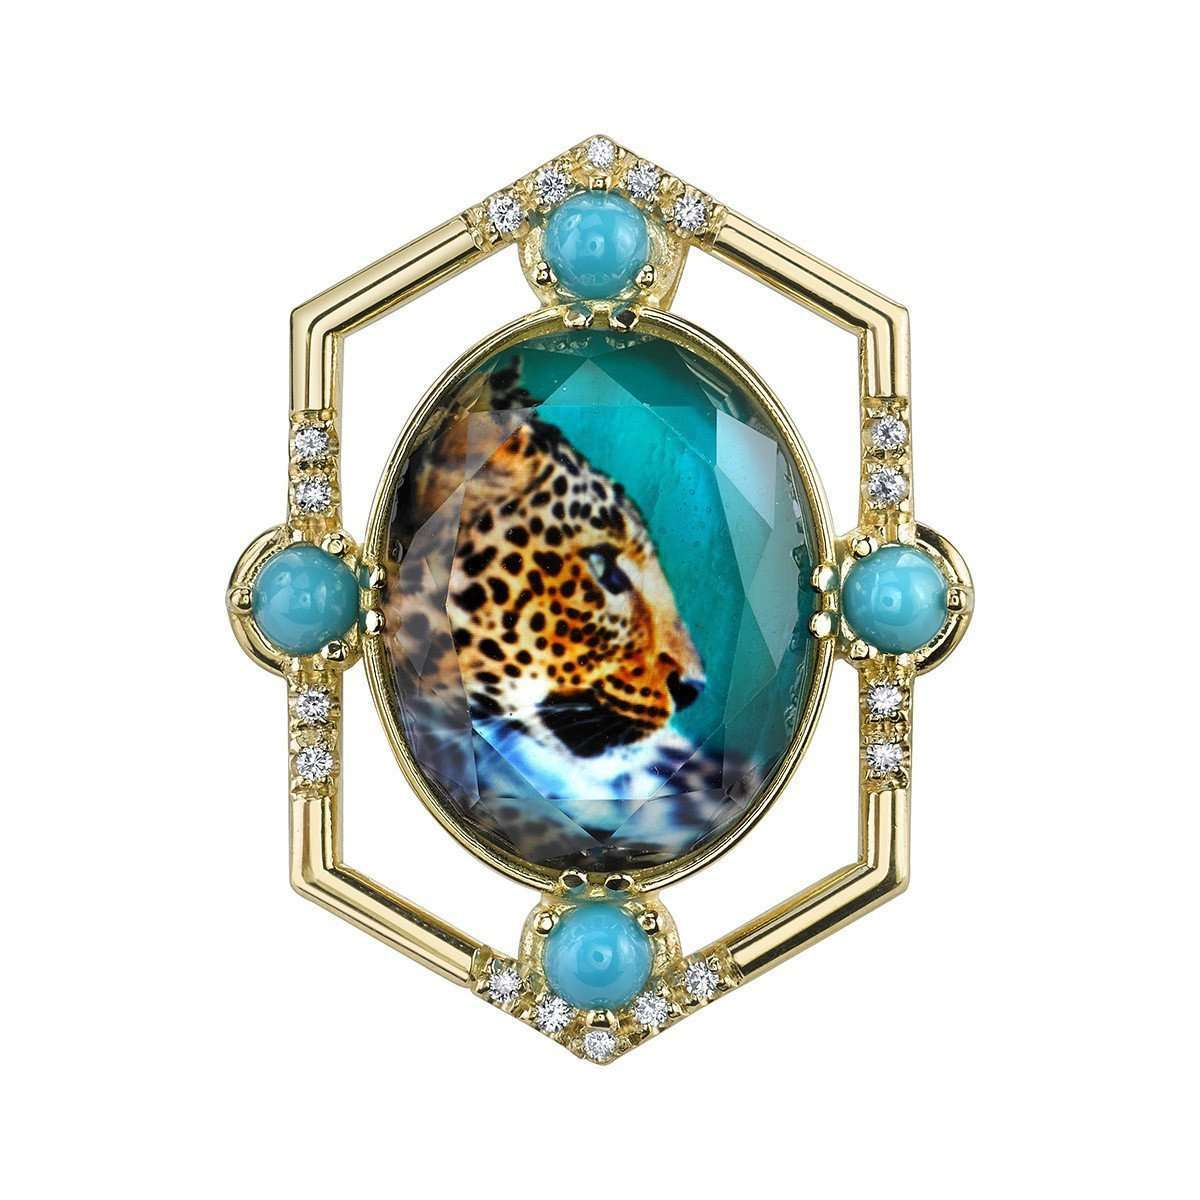 Leopard Pendant and Brooch-Spencer Fine Jewelry-JewelStreet US